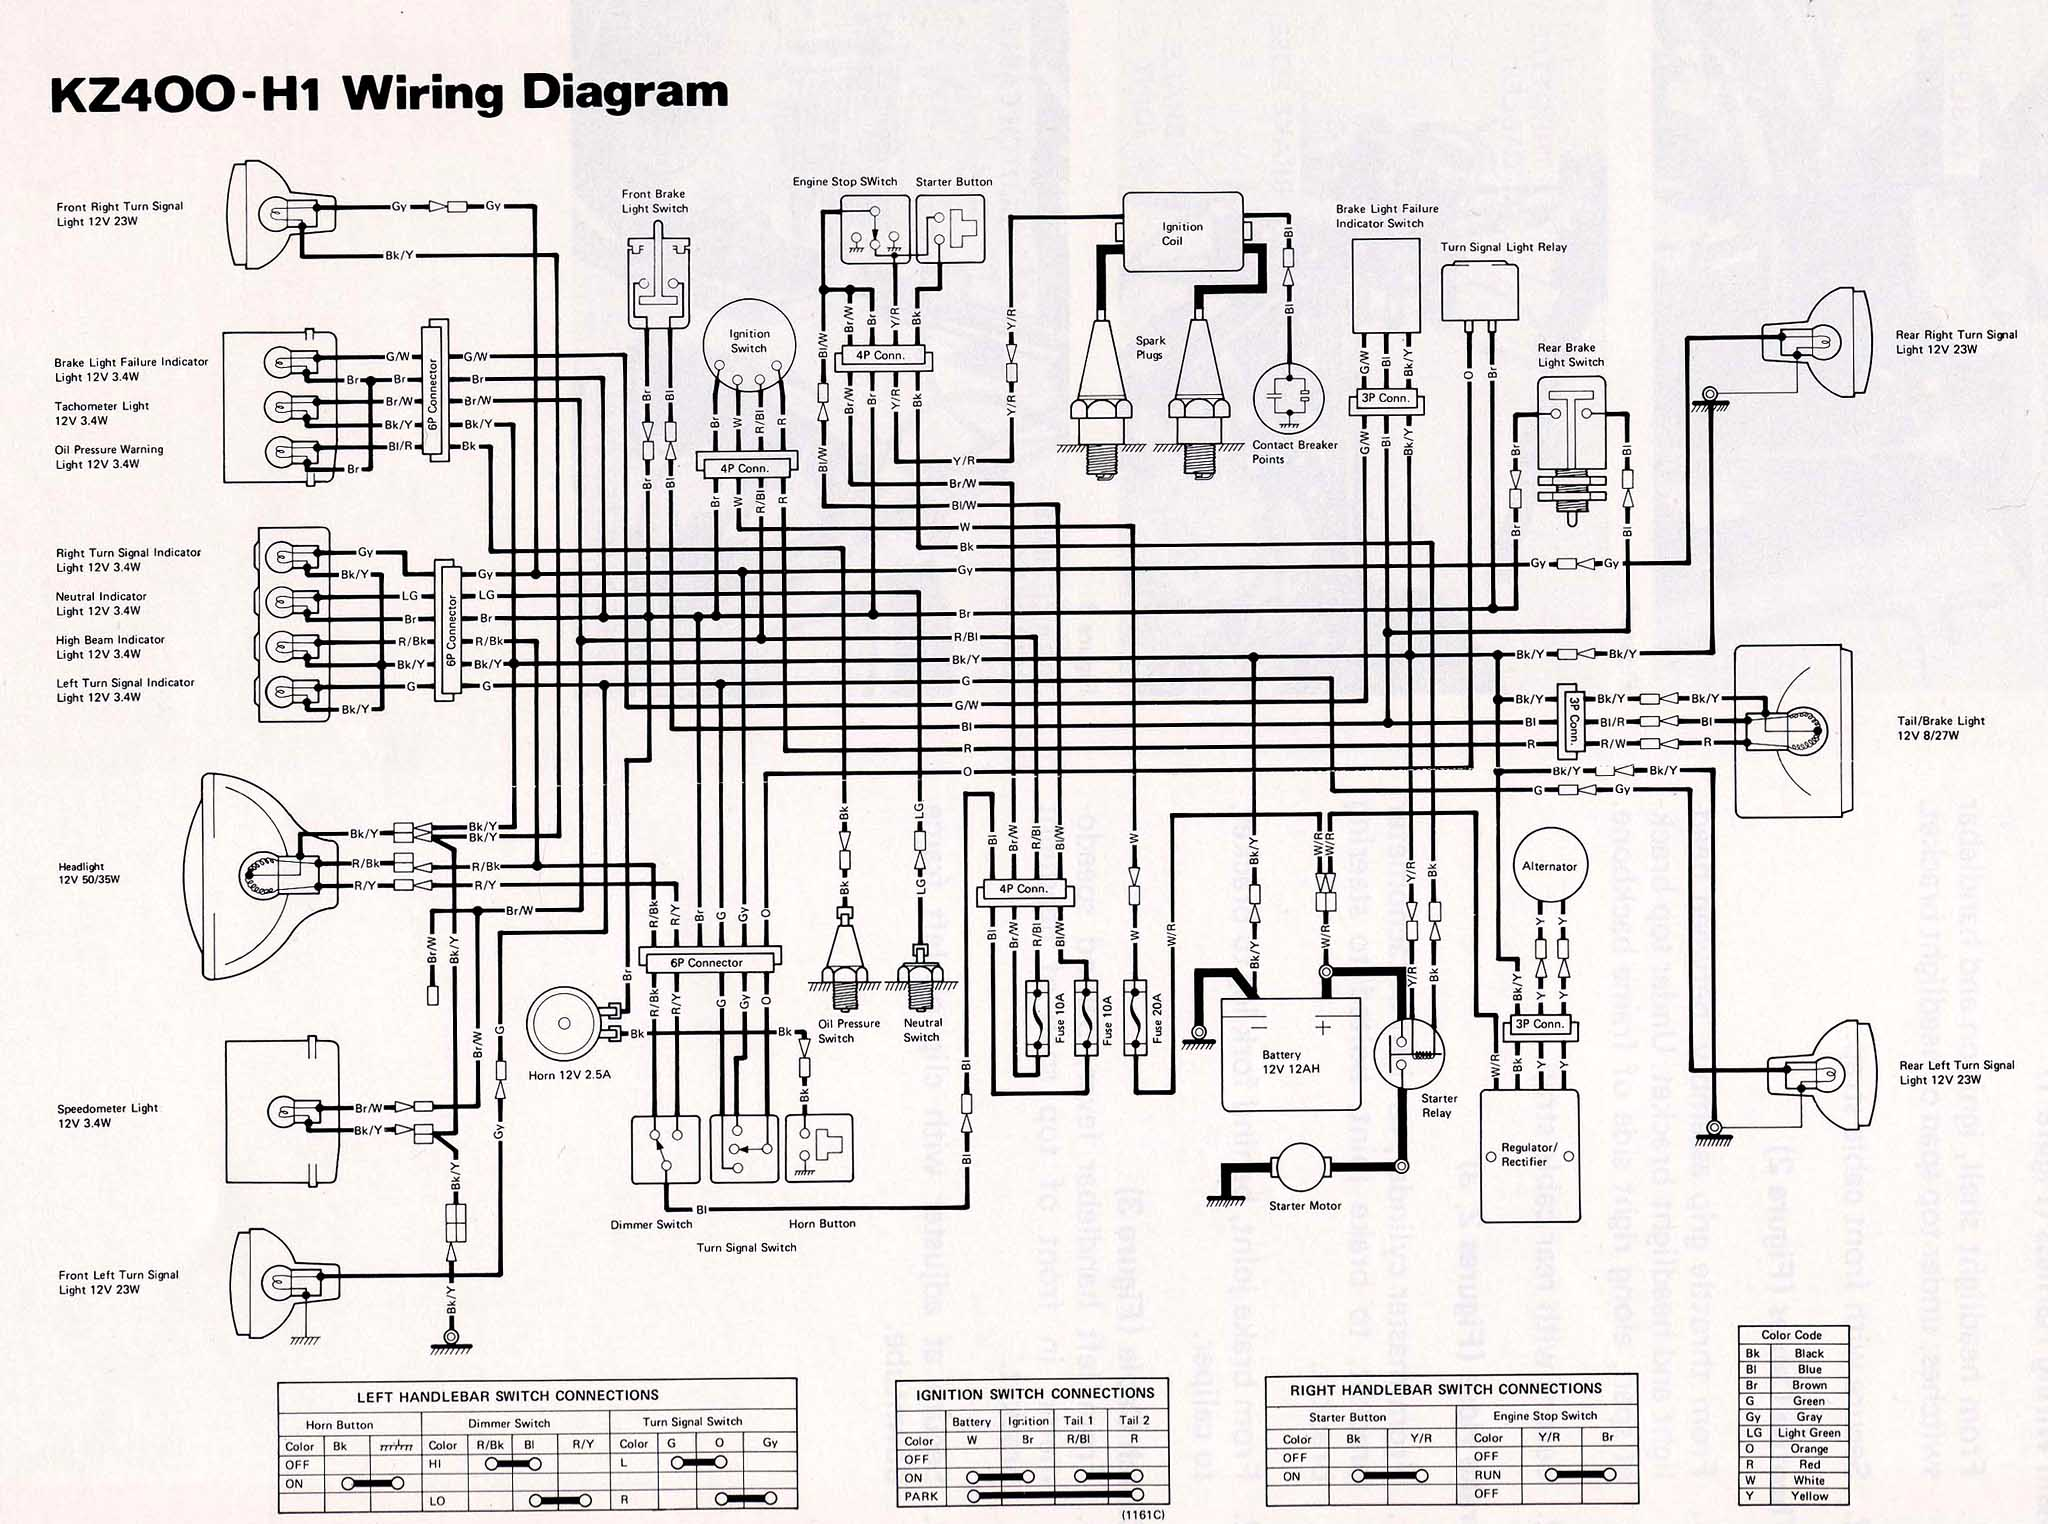 Rotation of KZ400 H1 LTD 22 index of techh tips bilder wiring diagrams 82 Kawasaki LTD 750 Bobber at webbmarketing.co